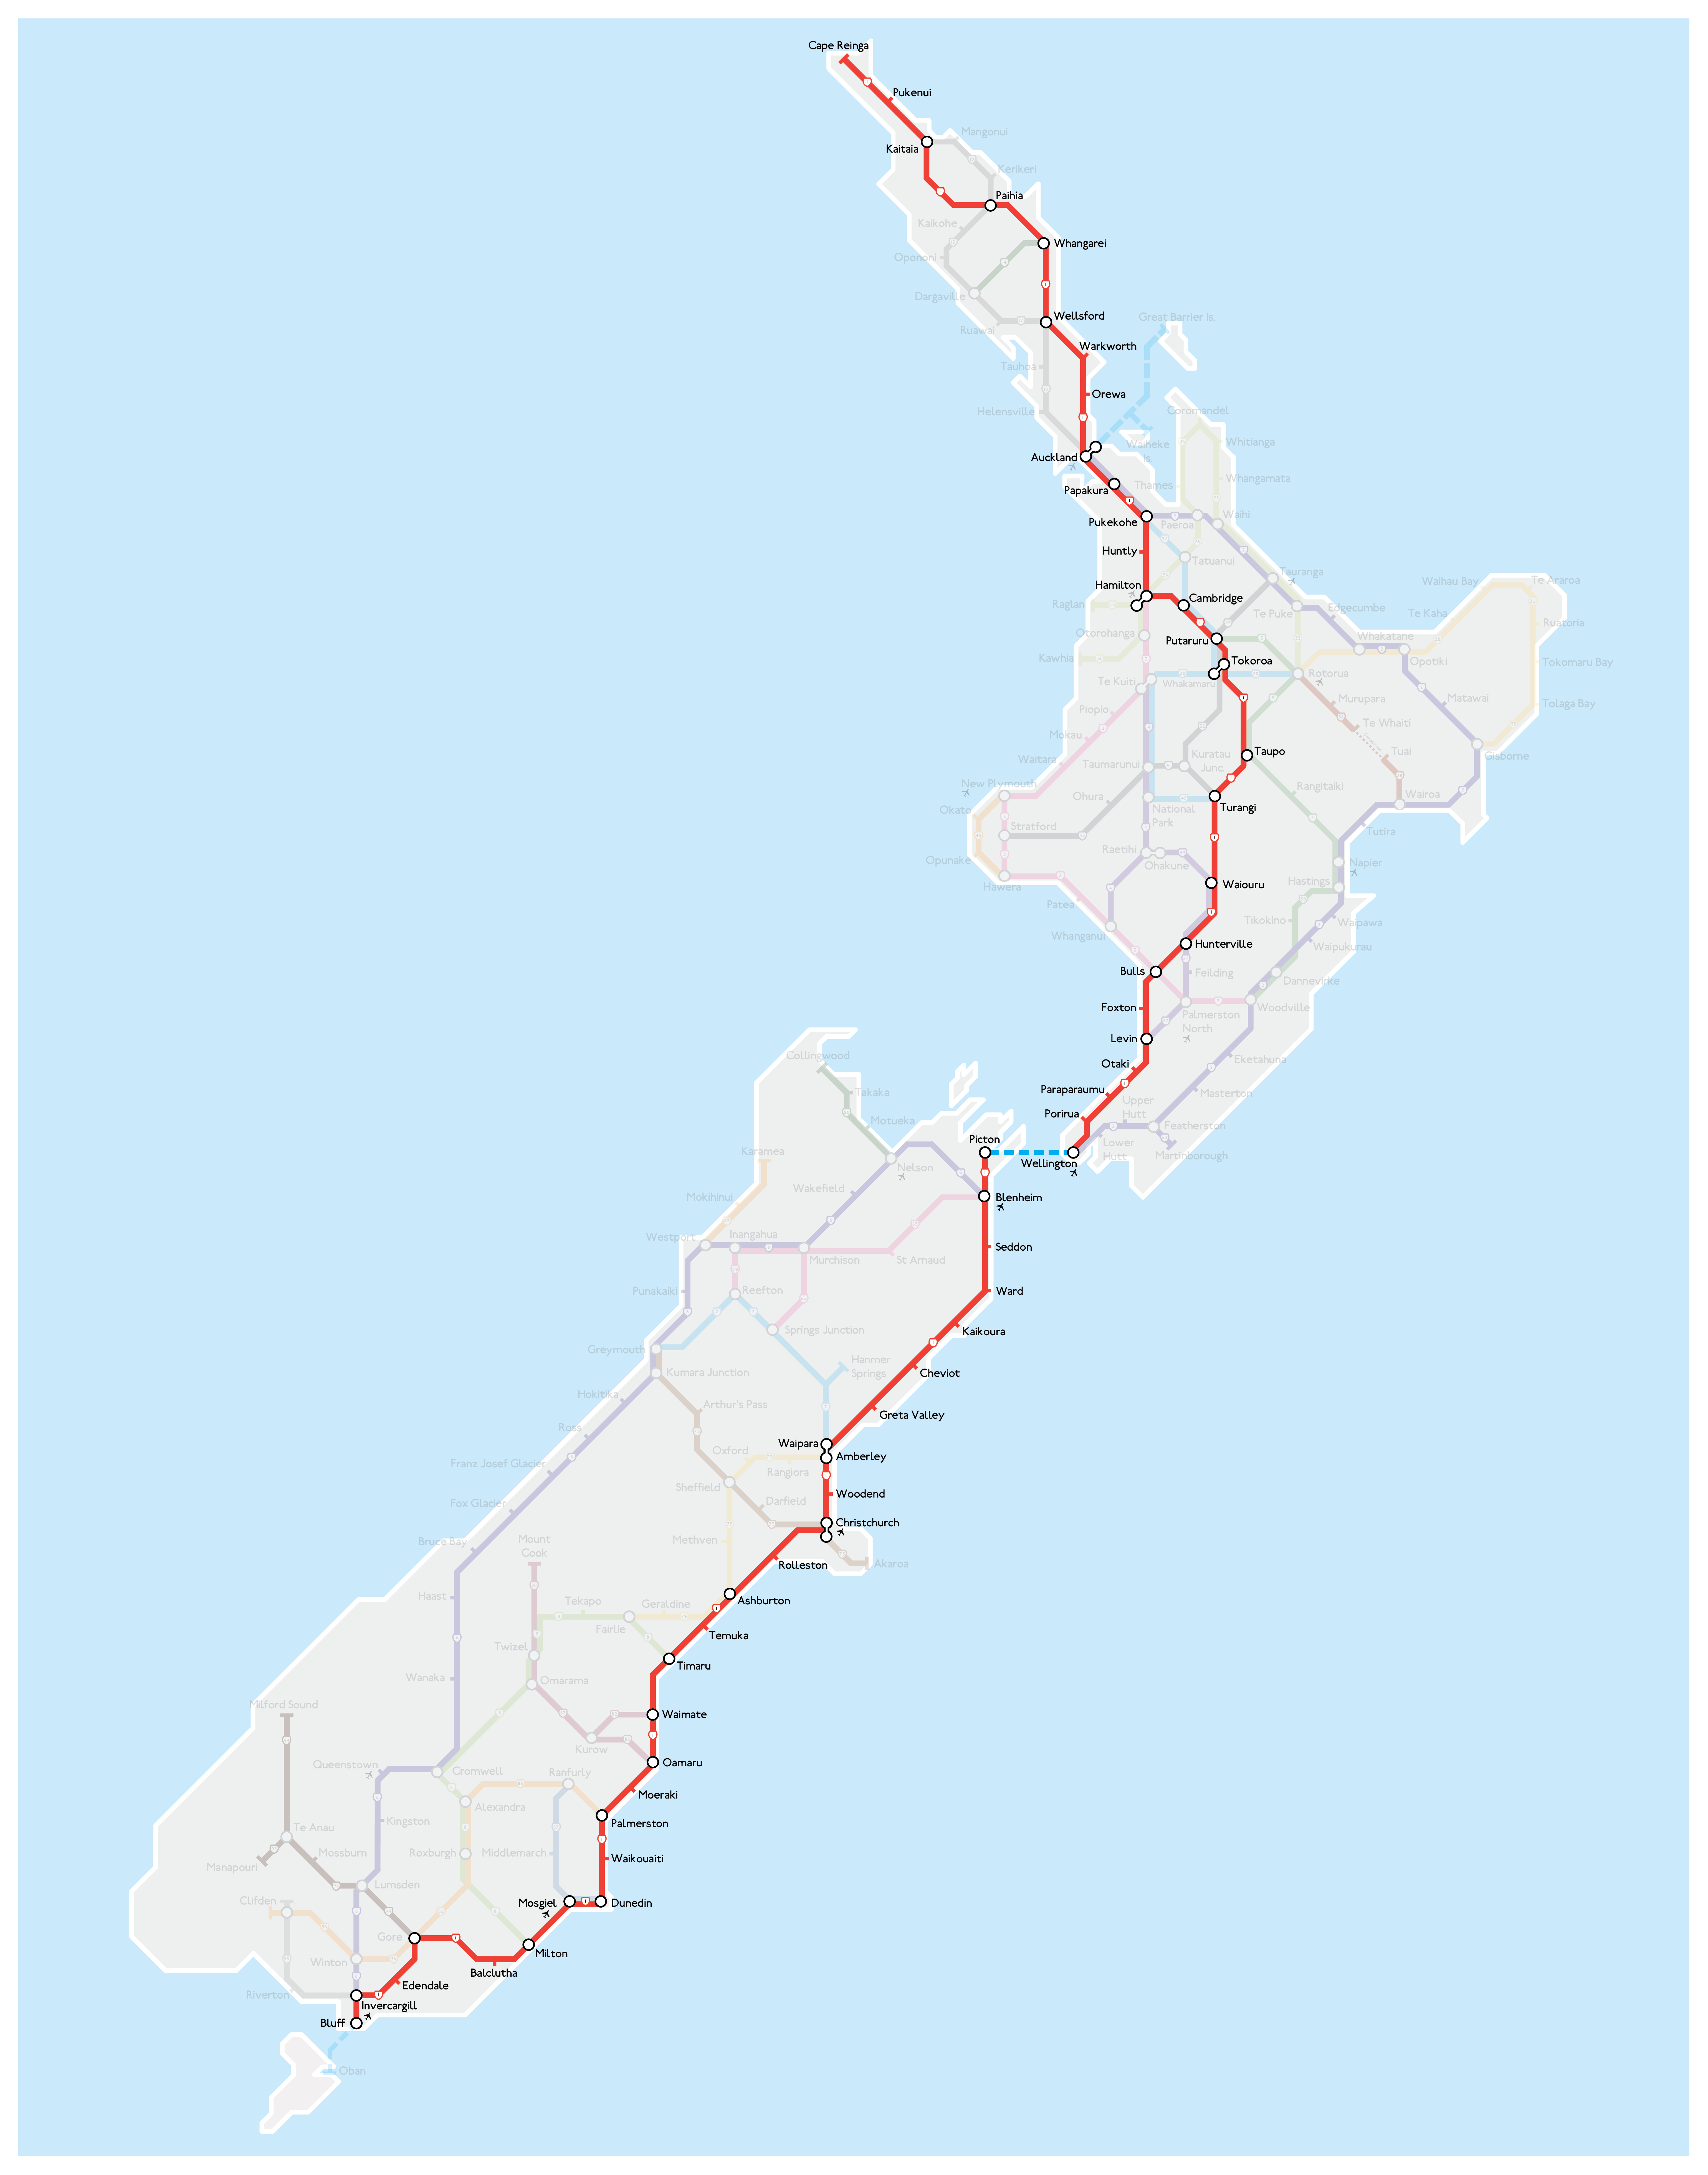 New Zealand Driving Map.The Great New Zealand Road Trip